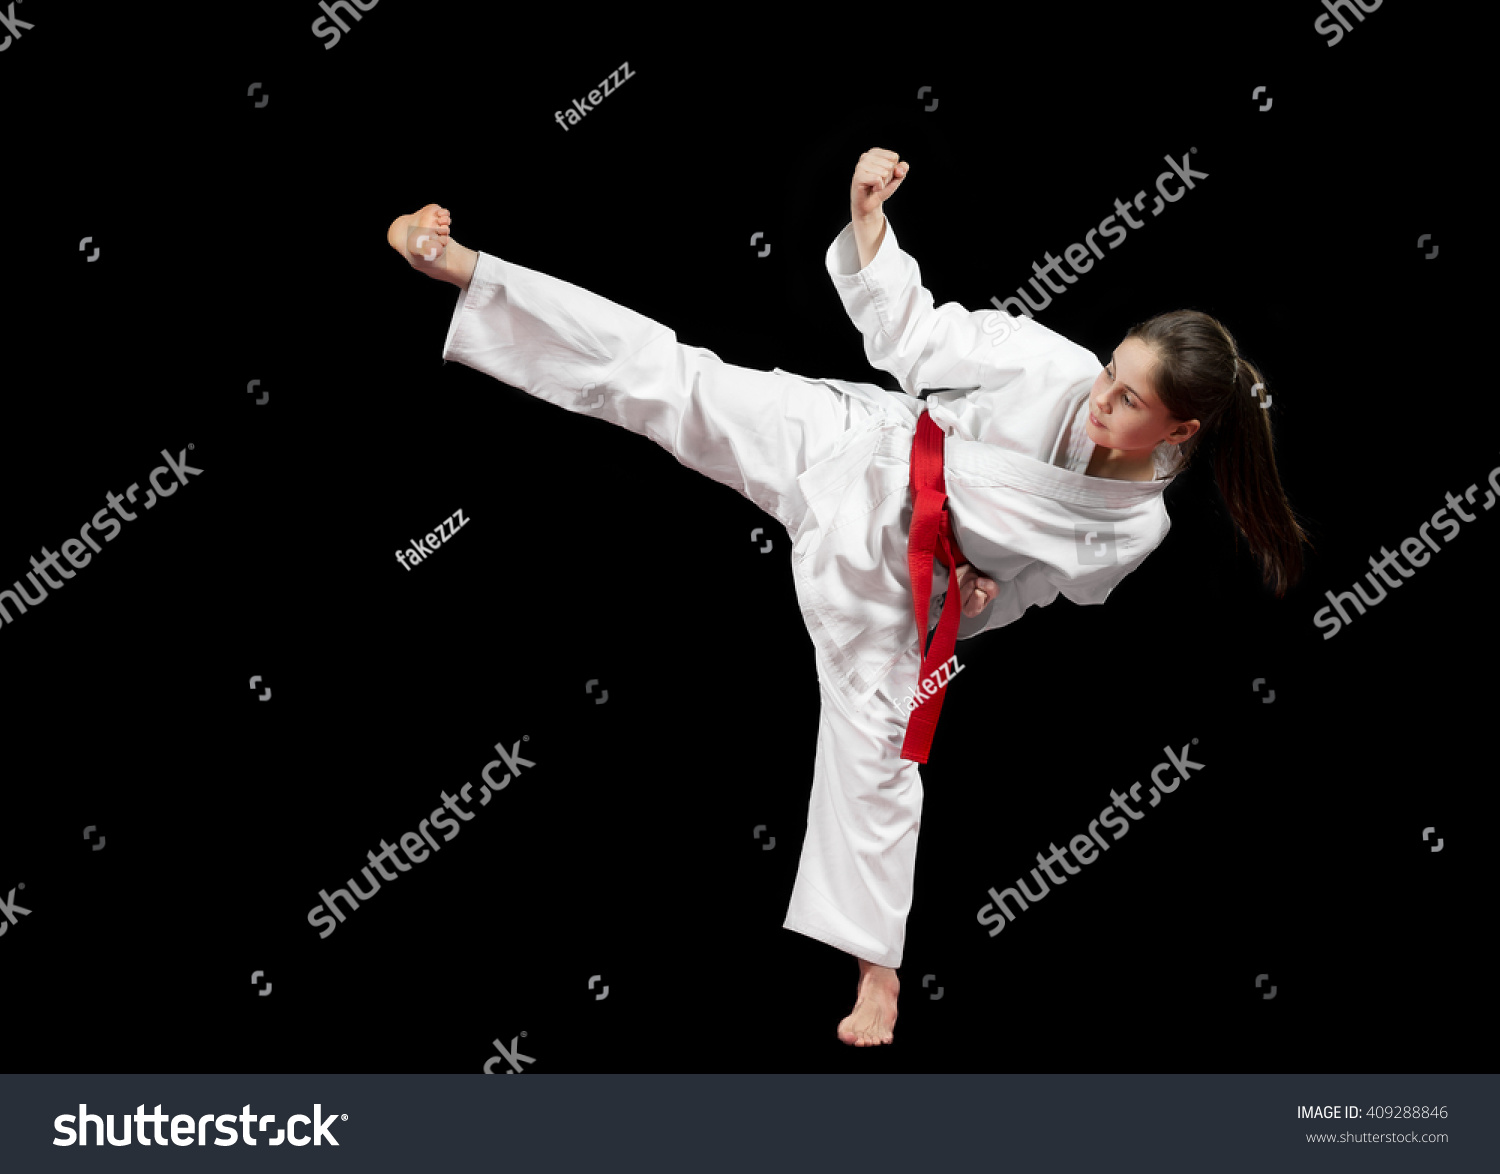 Young Girl Preforming Karate Martial Arts. Stock Photo ...